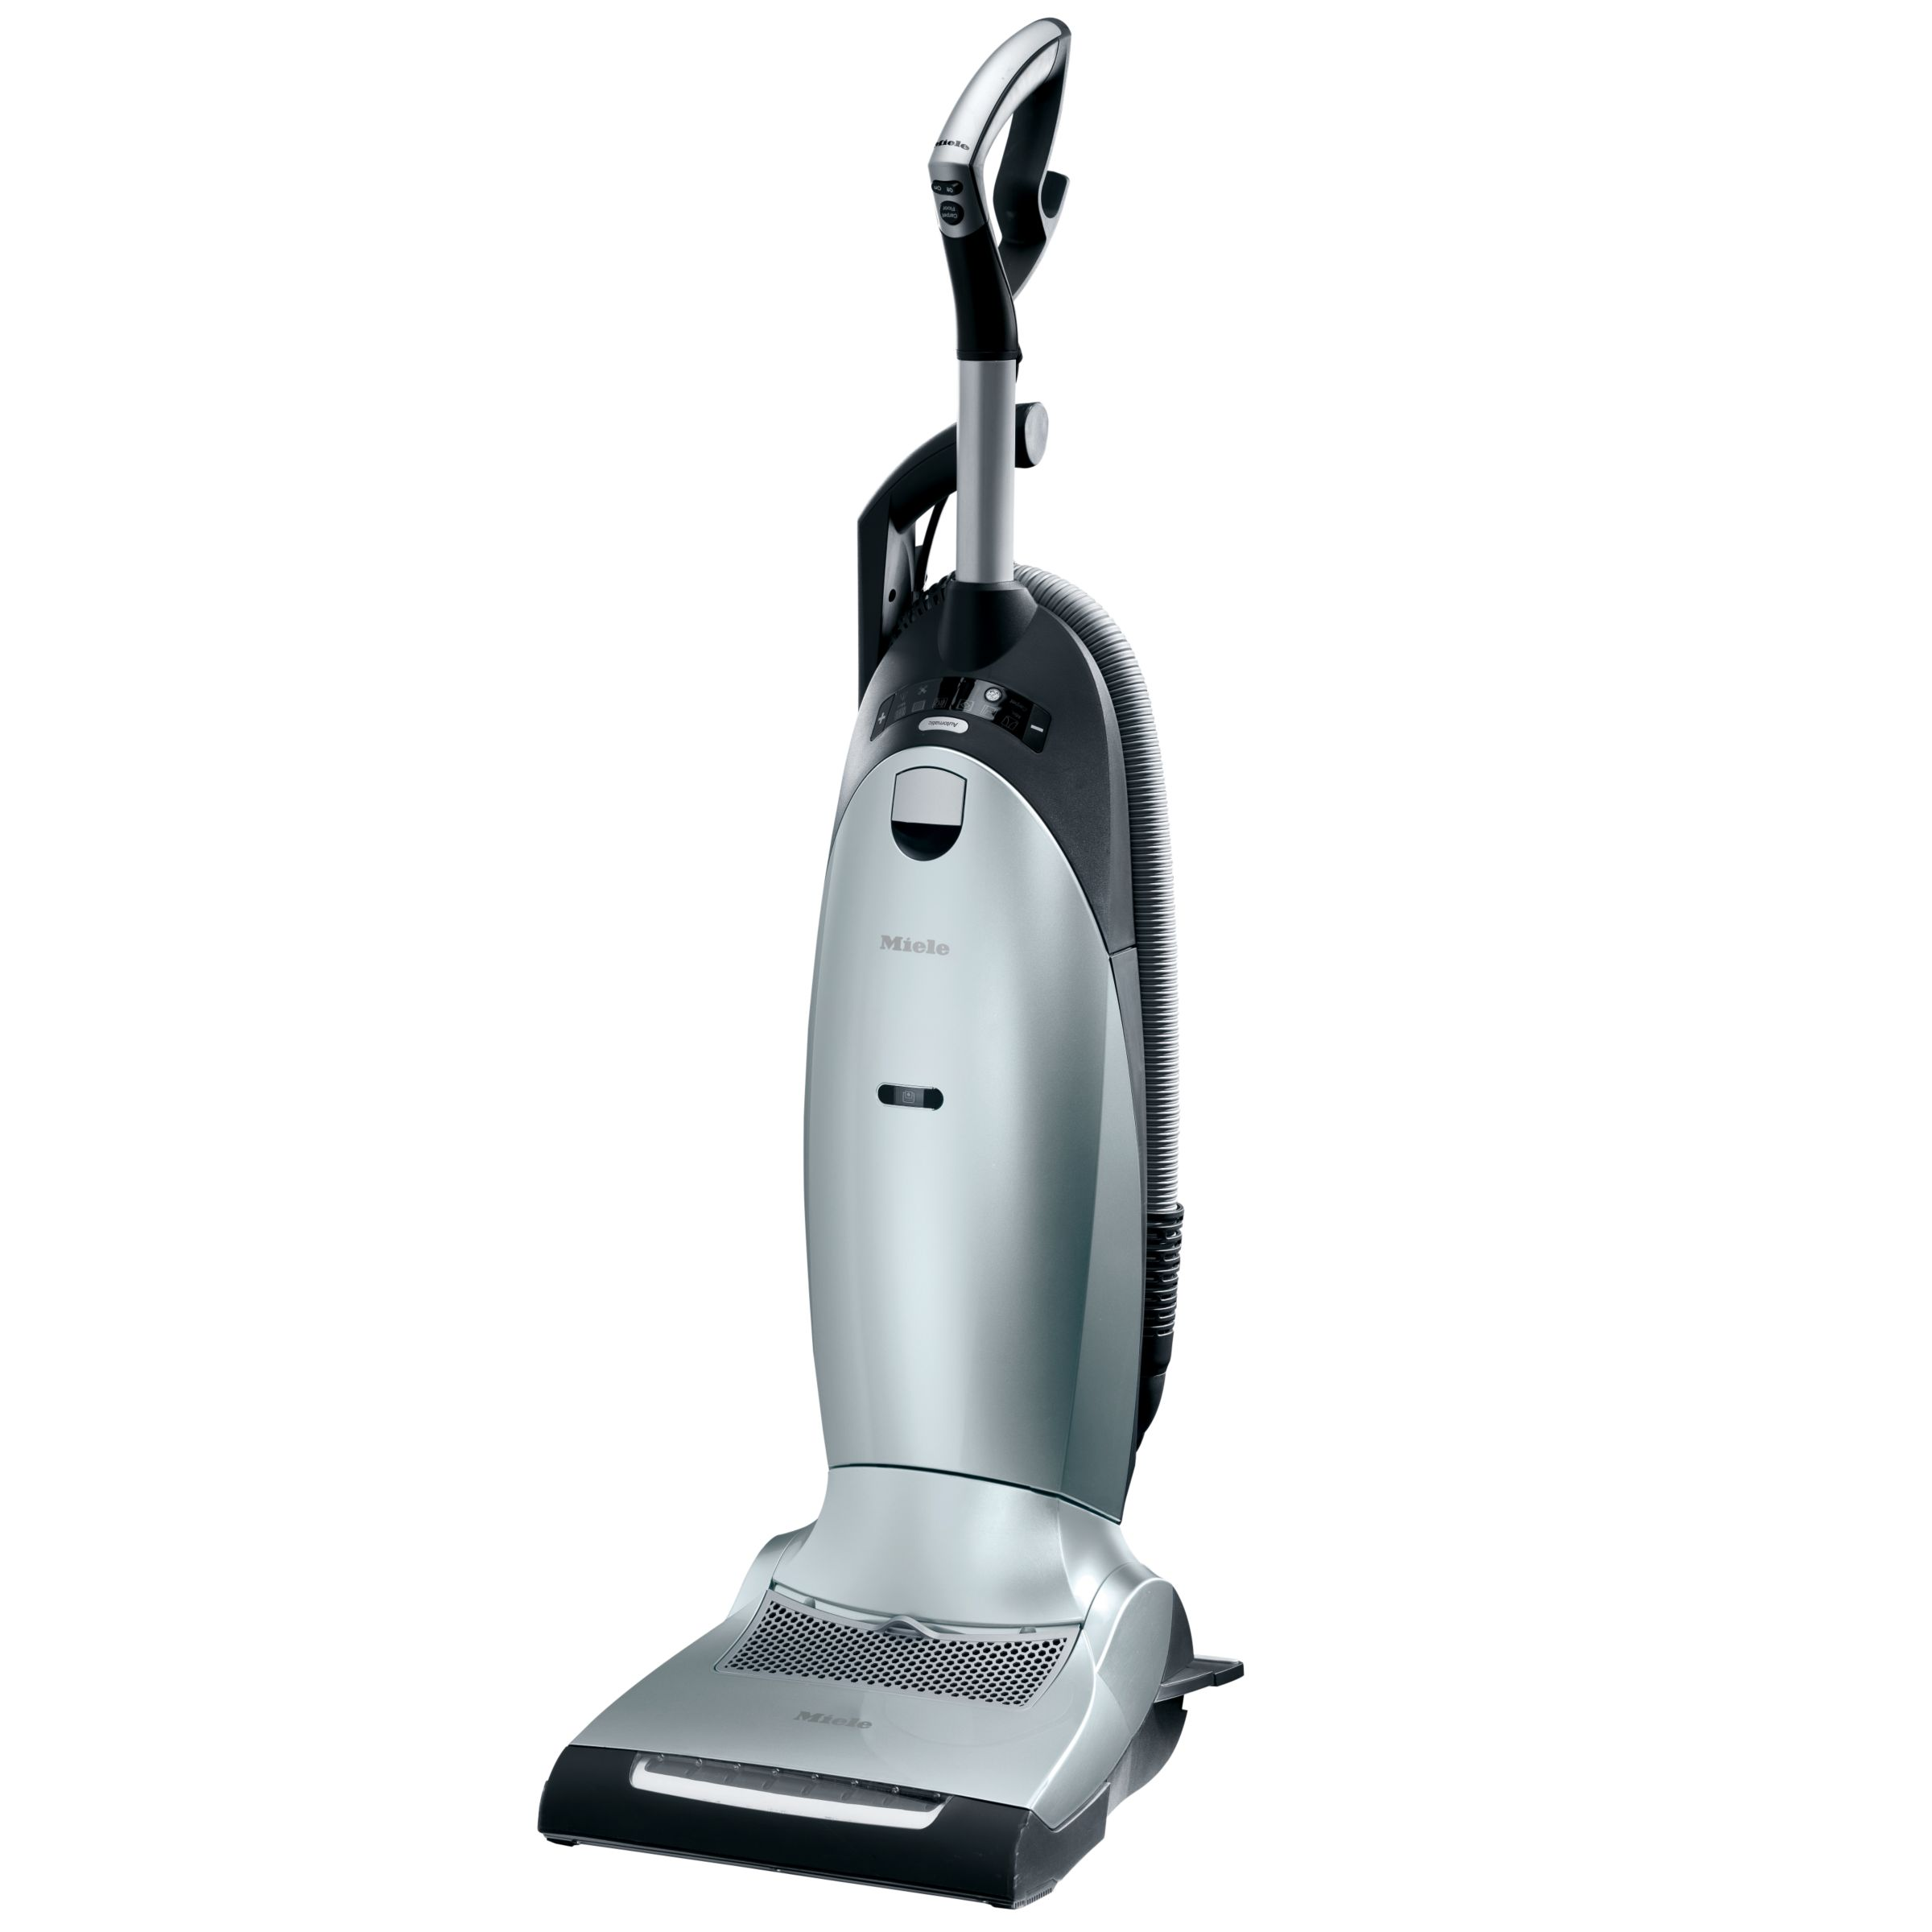 Miele S7580 AutoCare Upright Cleaner, Steel Blue at John Lewis